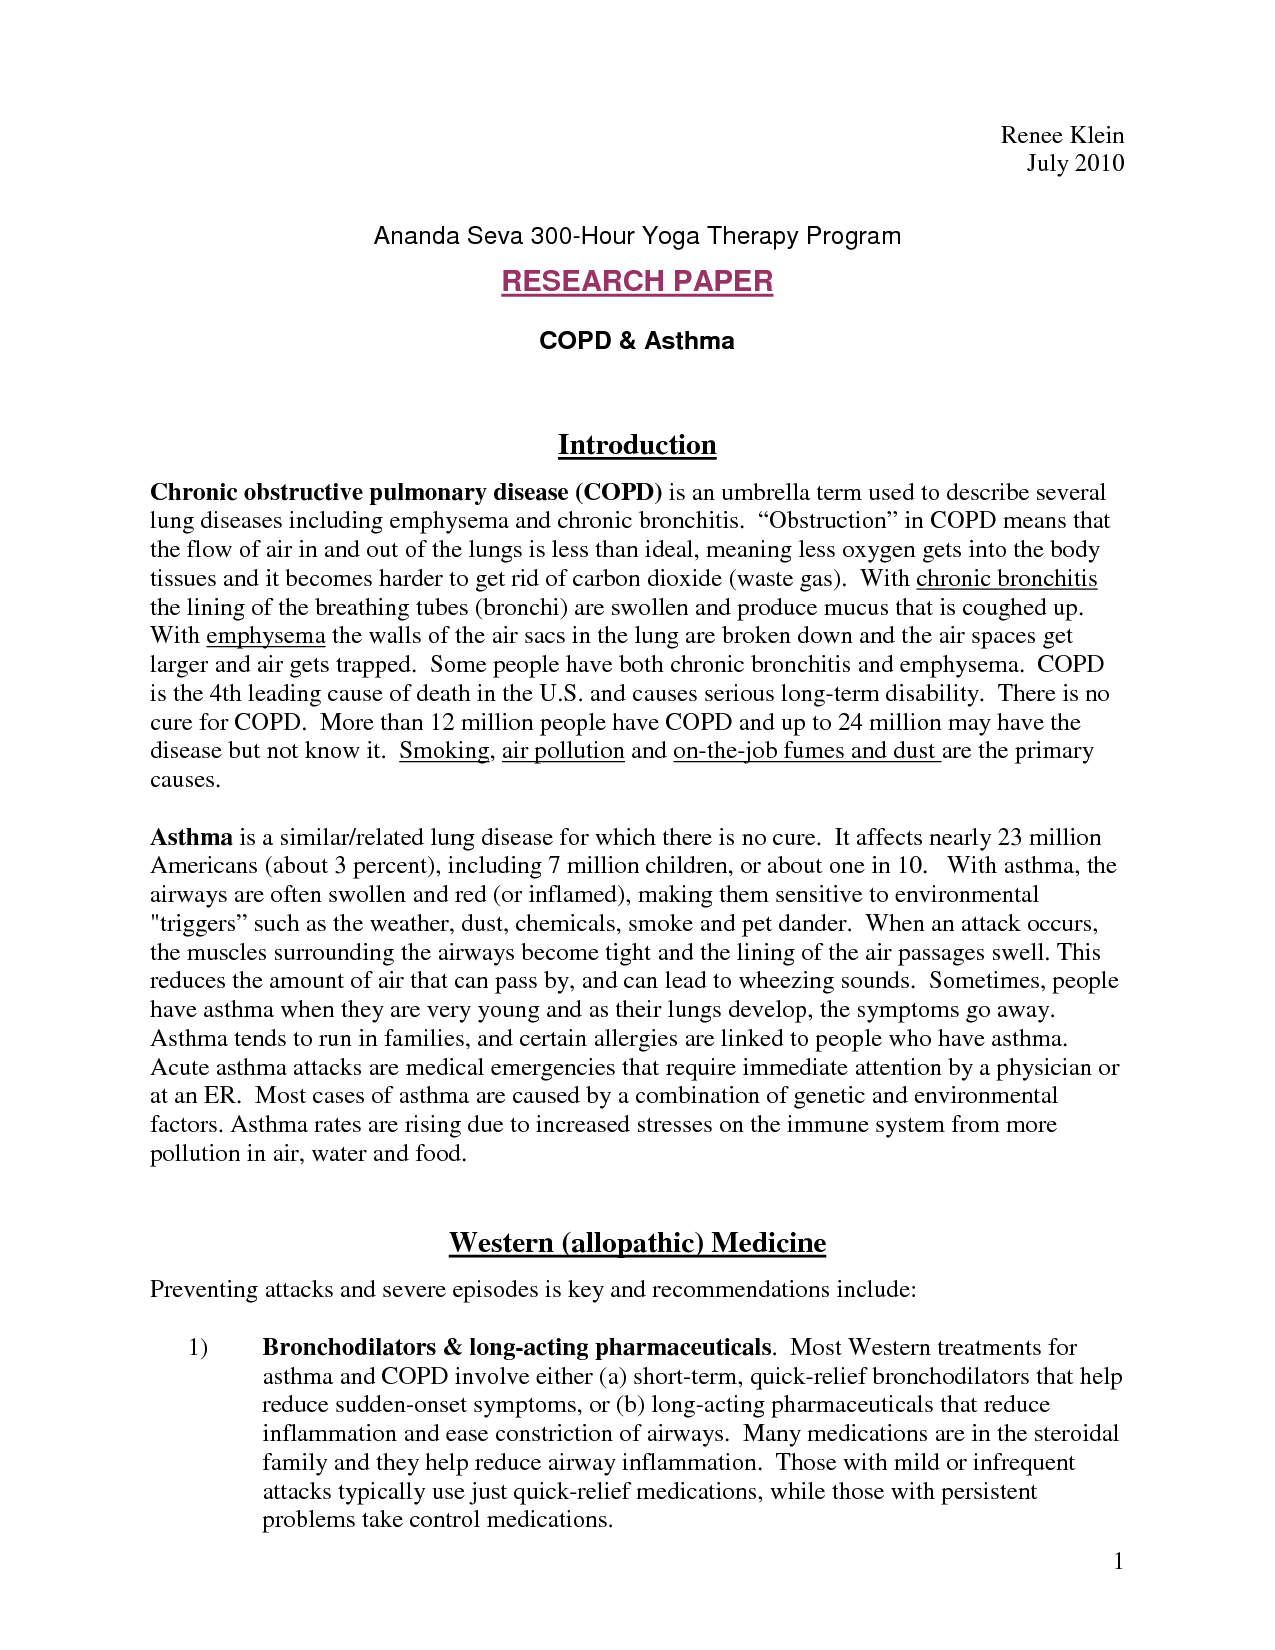 006 Best Photos Of Writing Portfolio Introduction Sample Good Essay Introductions L University Examples Research Paper College Persuasive Narrative Argumentative Intros For Unusual Essays Papers Pdf Expository Full